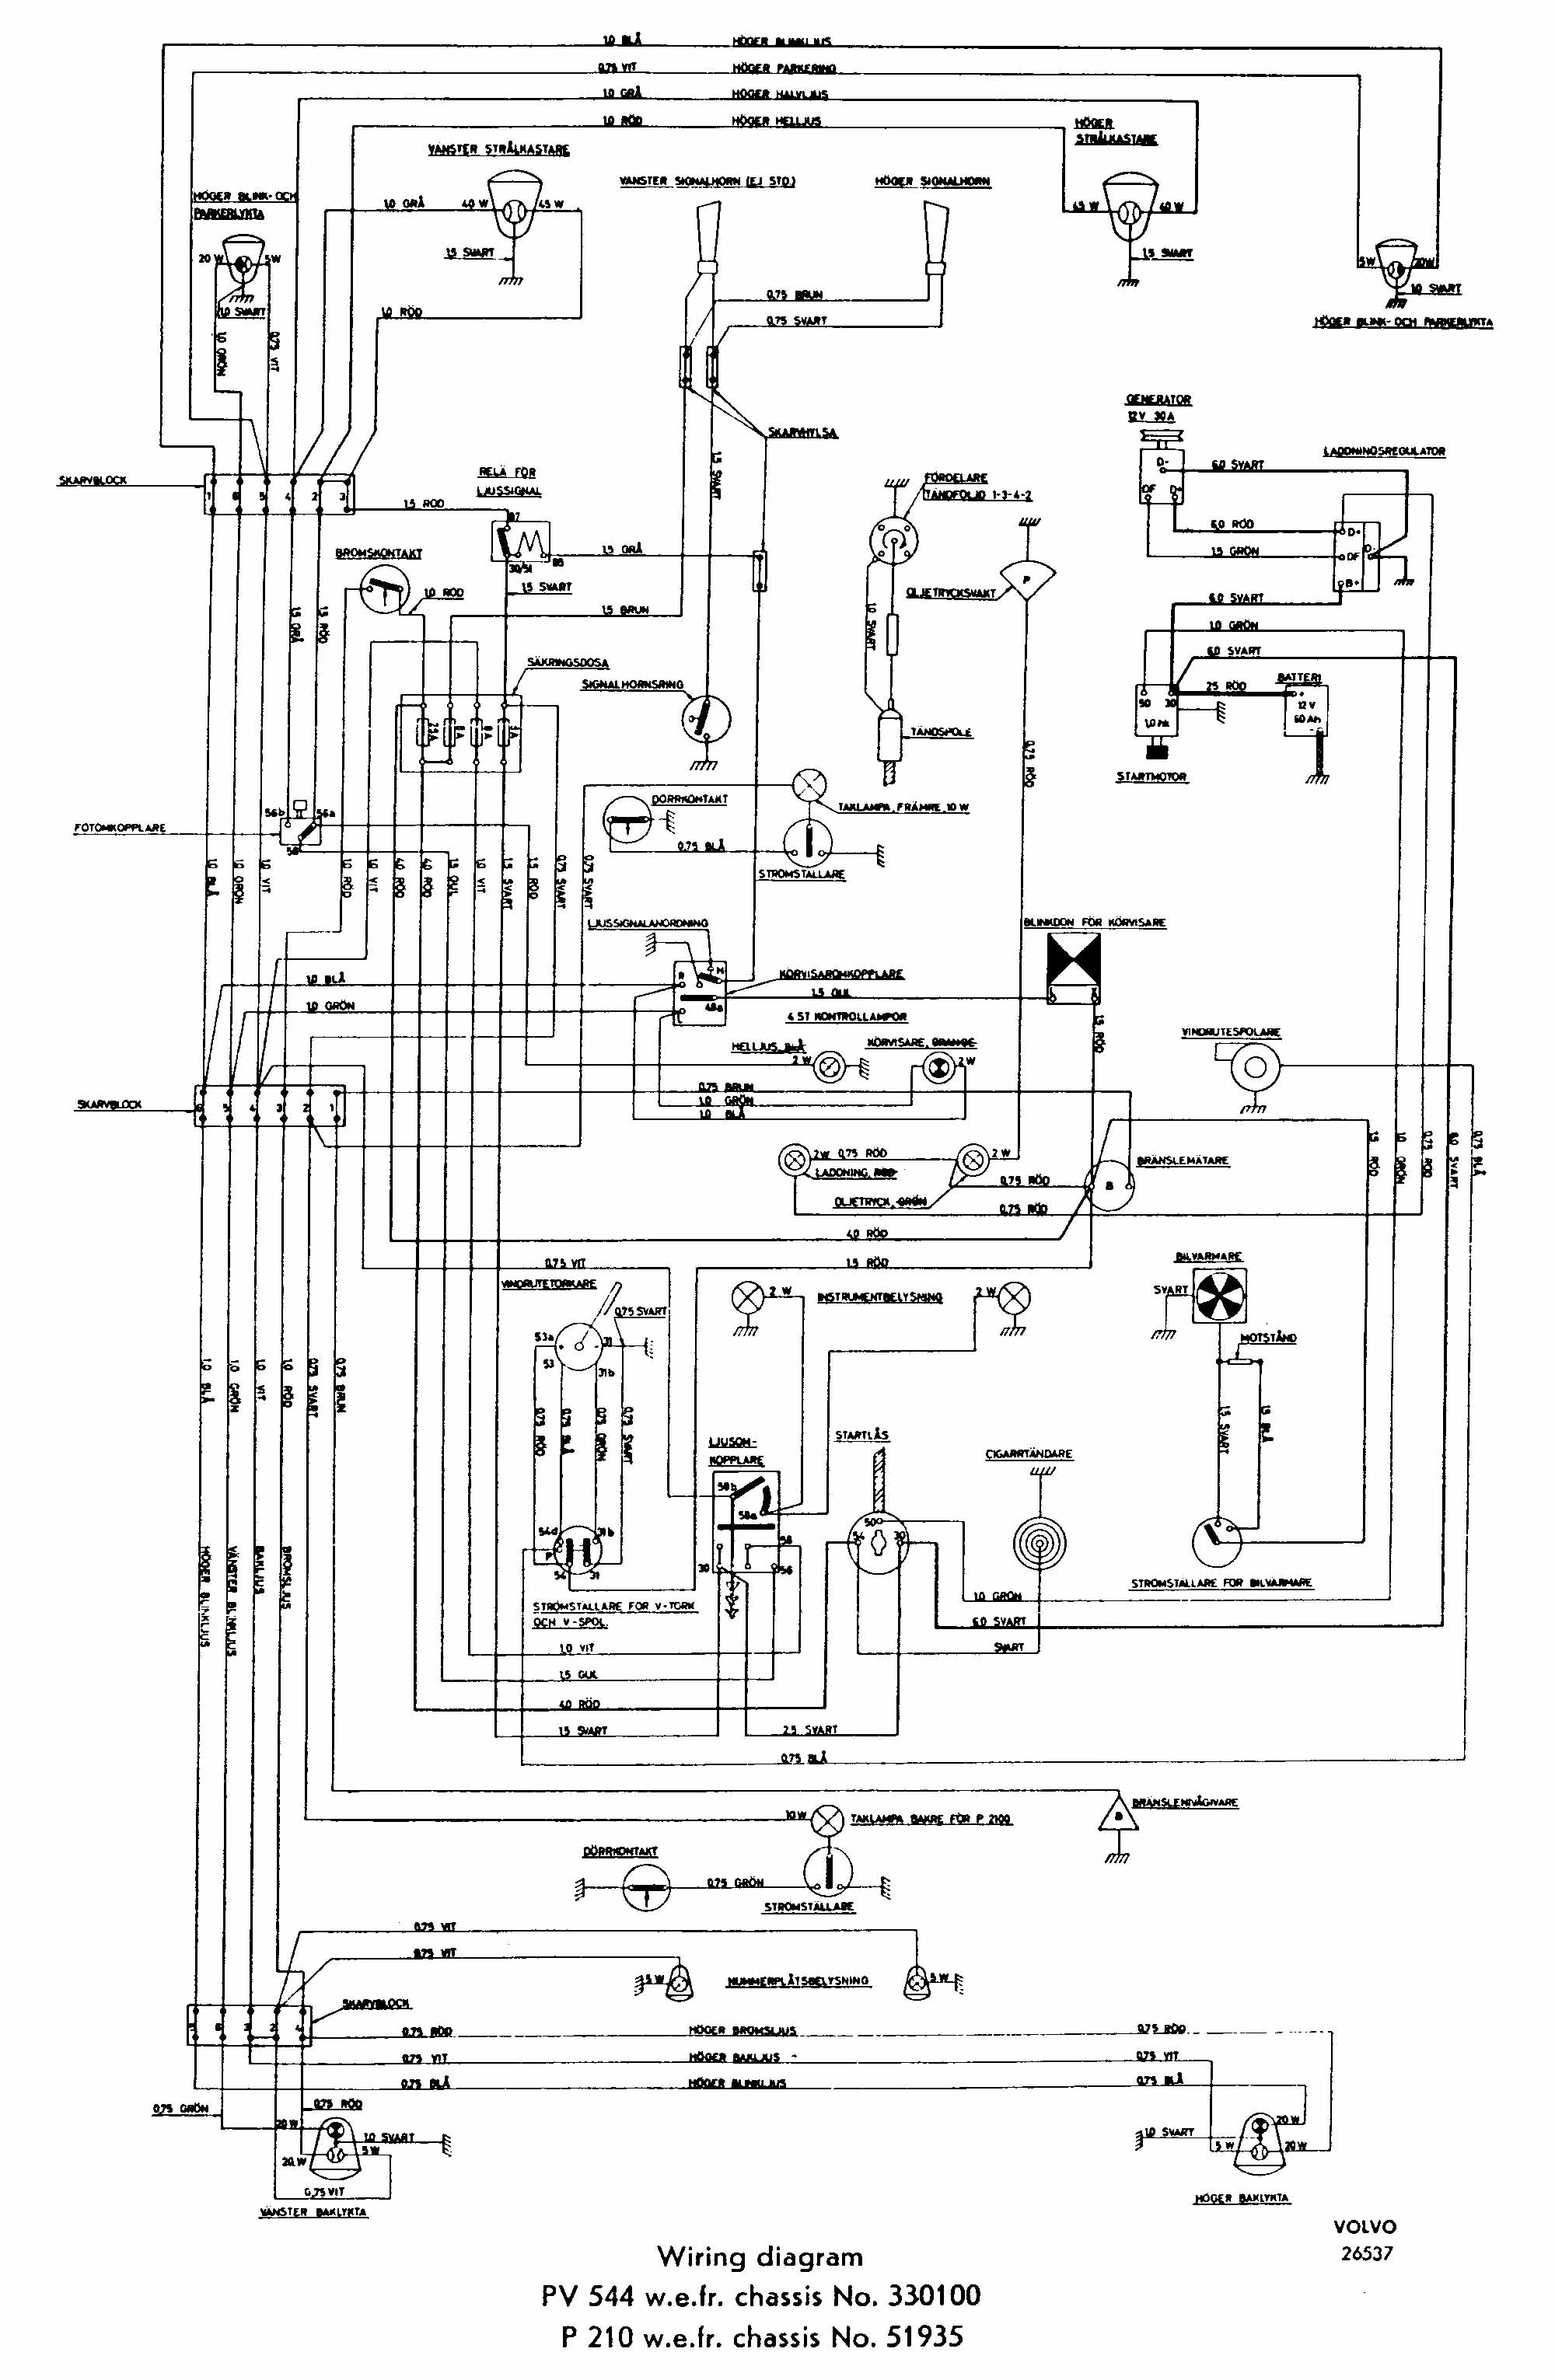 5915a Wiring Diagram Volvo 960 Page 5 Wiring Diagram And Schematics Wiring Library